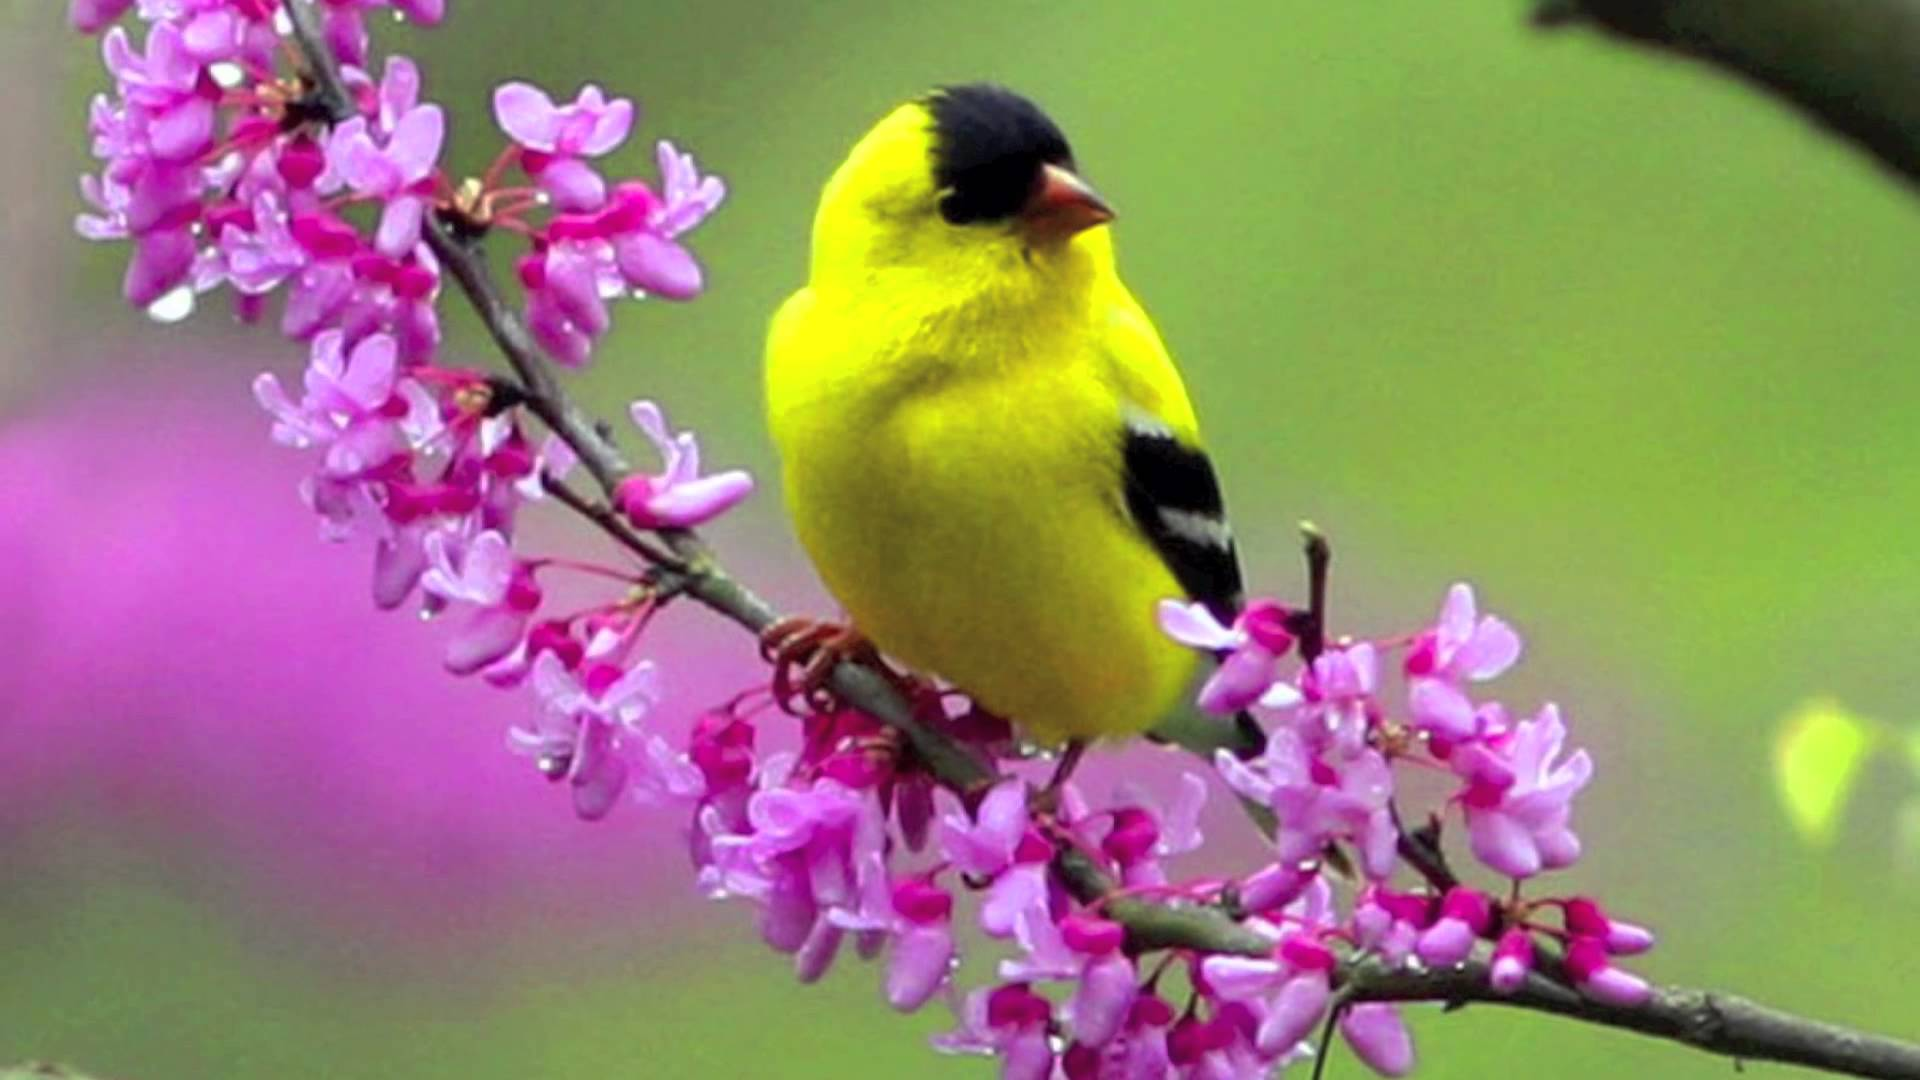 birds and flowers wallpaper which is under the birds wallpapers 1920x1080